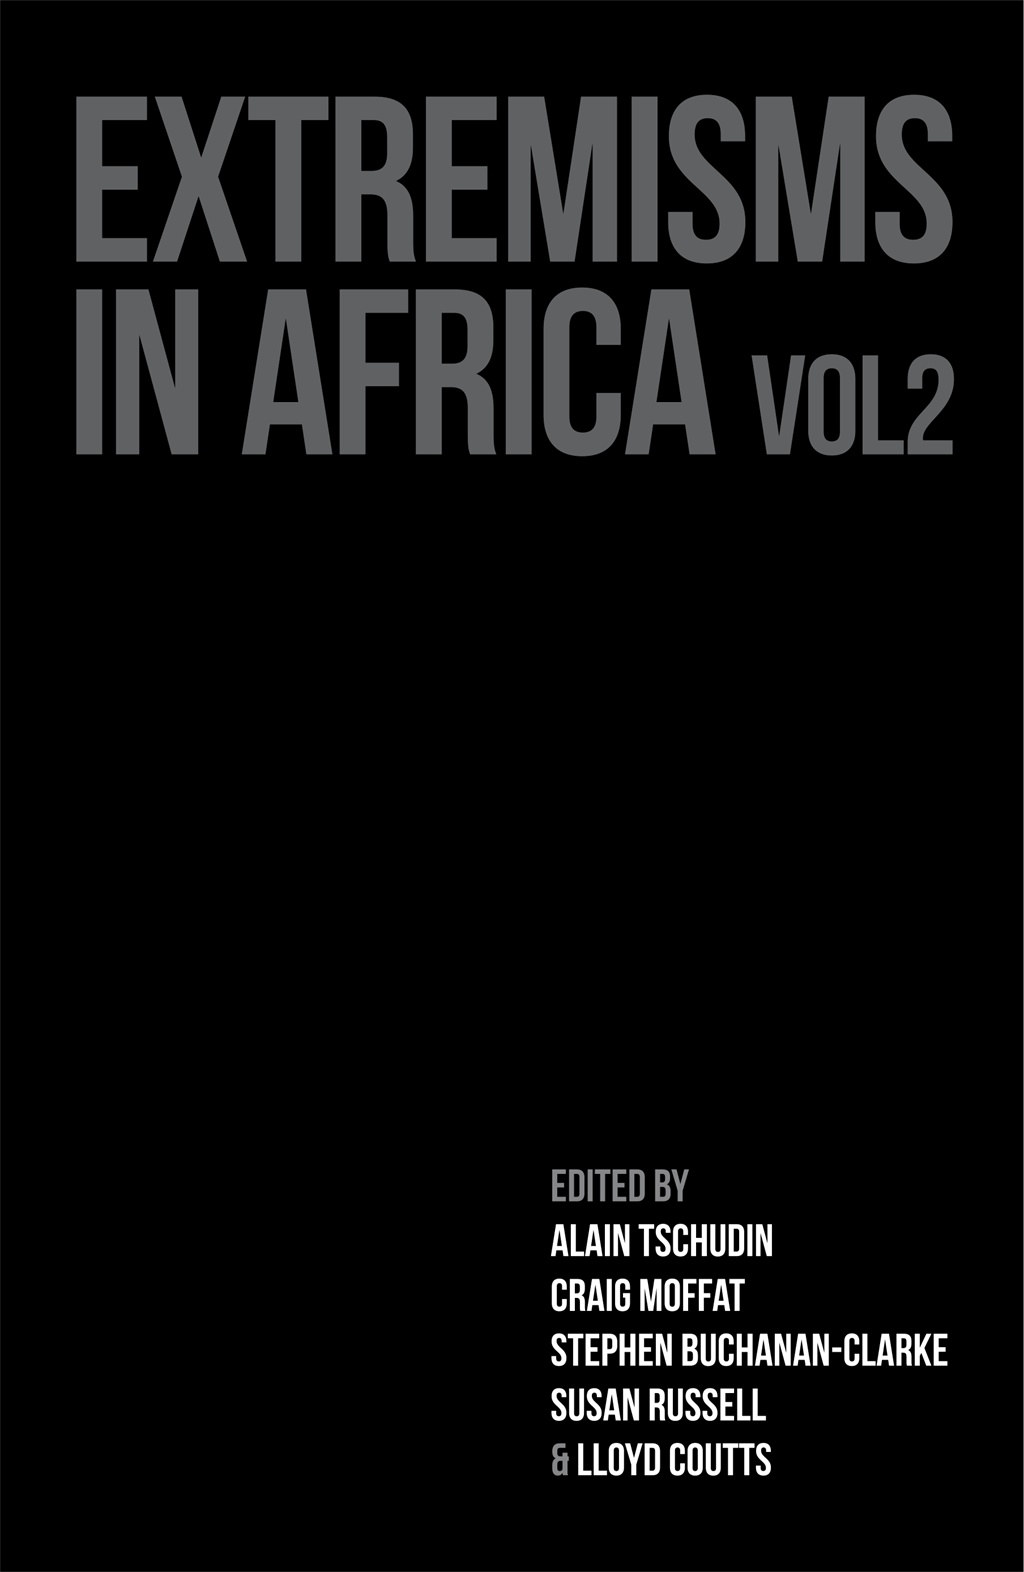 Extremisms in Africa Volume 2. Edited by Alain Tschudin, Craig Moffat, Stephen Buchanan-Clarke, Susan Russell & Lloyd Coutts. Published by Tracey McDonald Publishers.